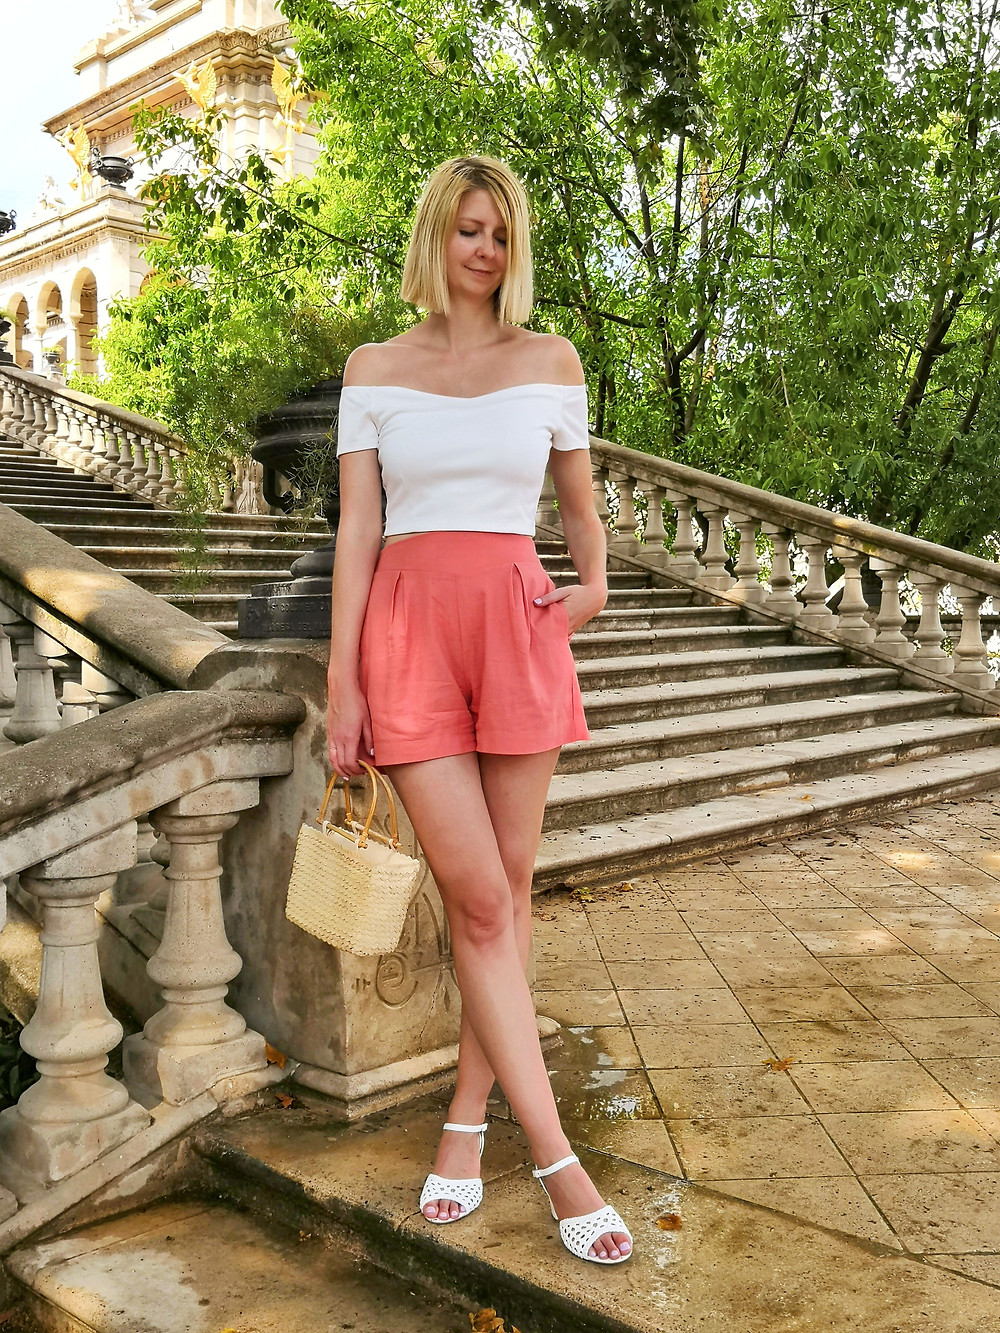 Crop top and shorts daytime summer outfit in the park